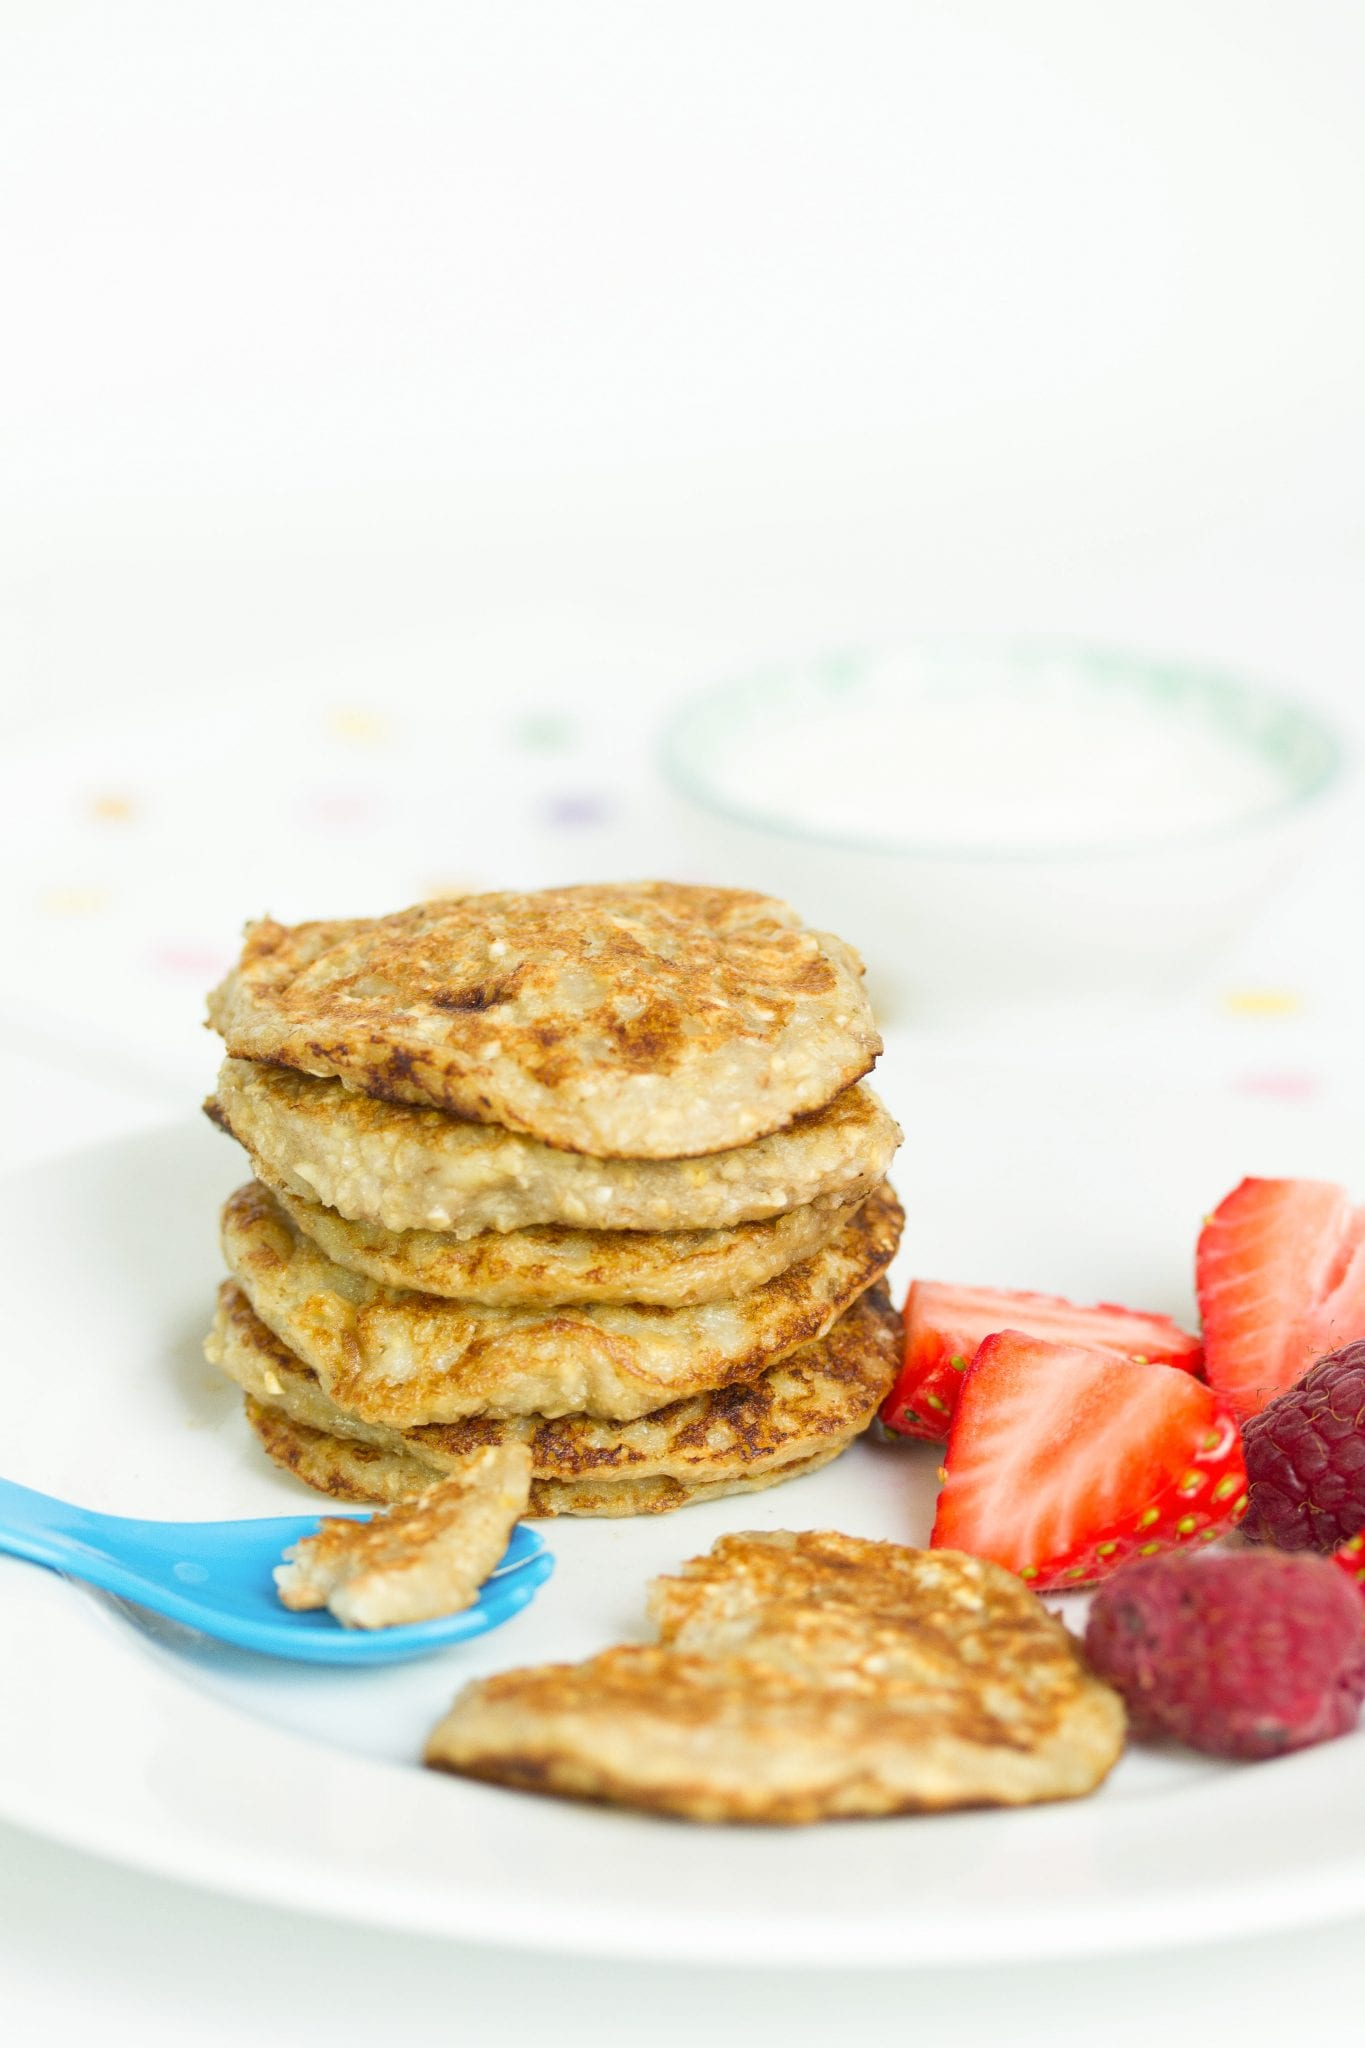 Baby banana pancakes, enjoy these delicious weaning pancakes made with just 3 ingredients. Gluten free, dairy free and added sugar free they are a perfect first food for baby